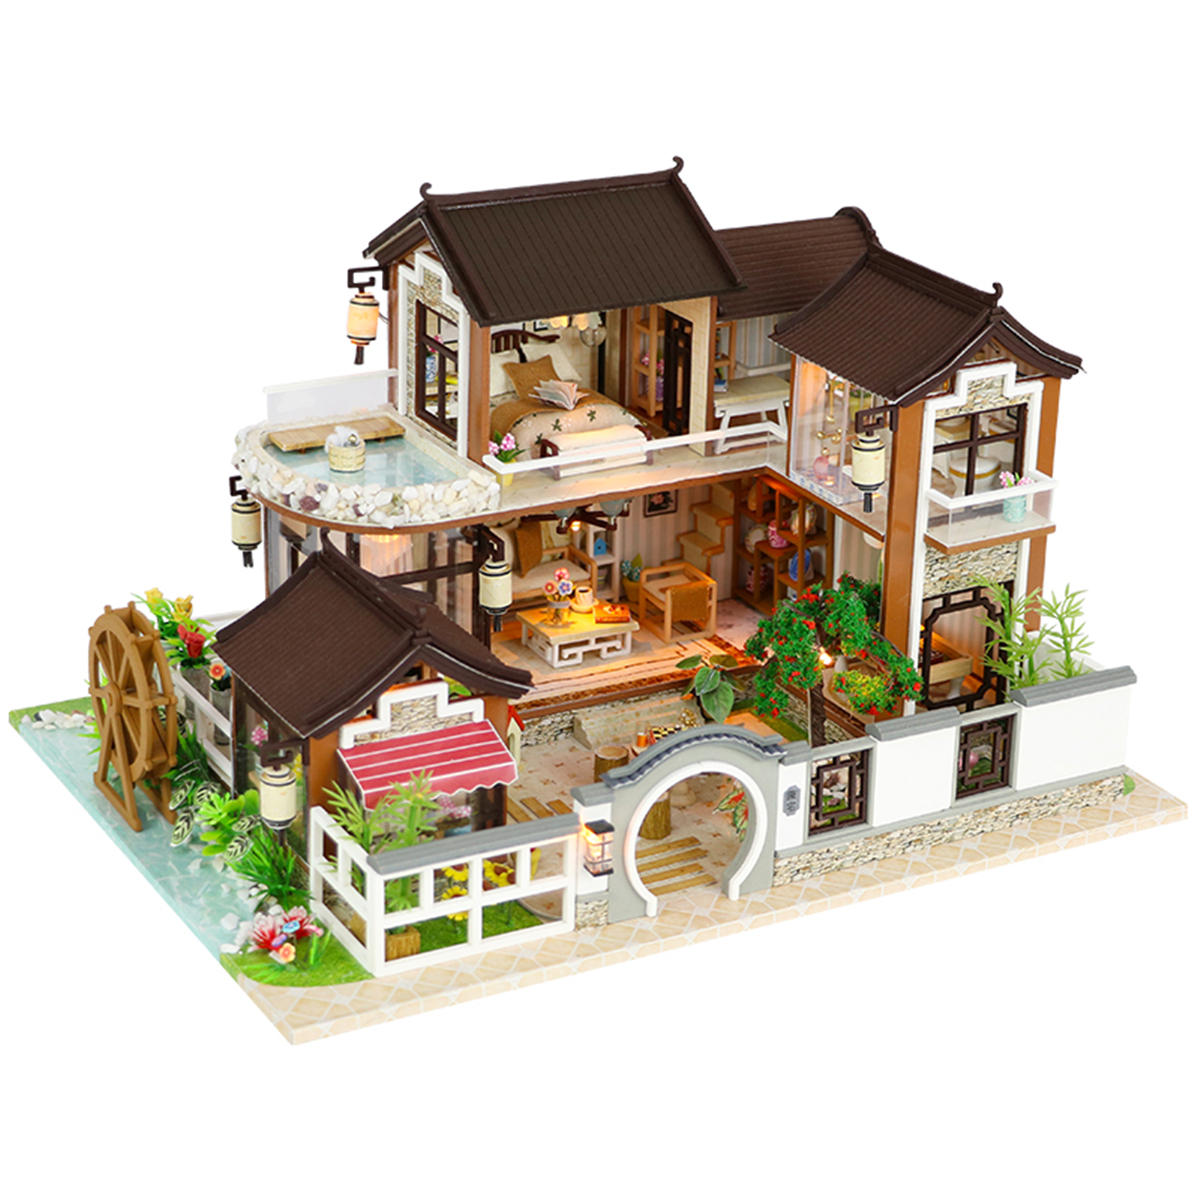 Fabulous Diy Dollhouse Miniature Doll House Furniture Kit Led Kids Cat Birthday Xmas Gift House Download Free Architecture Designs Viewormadebymaigaardcom